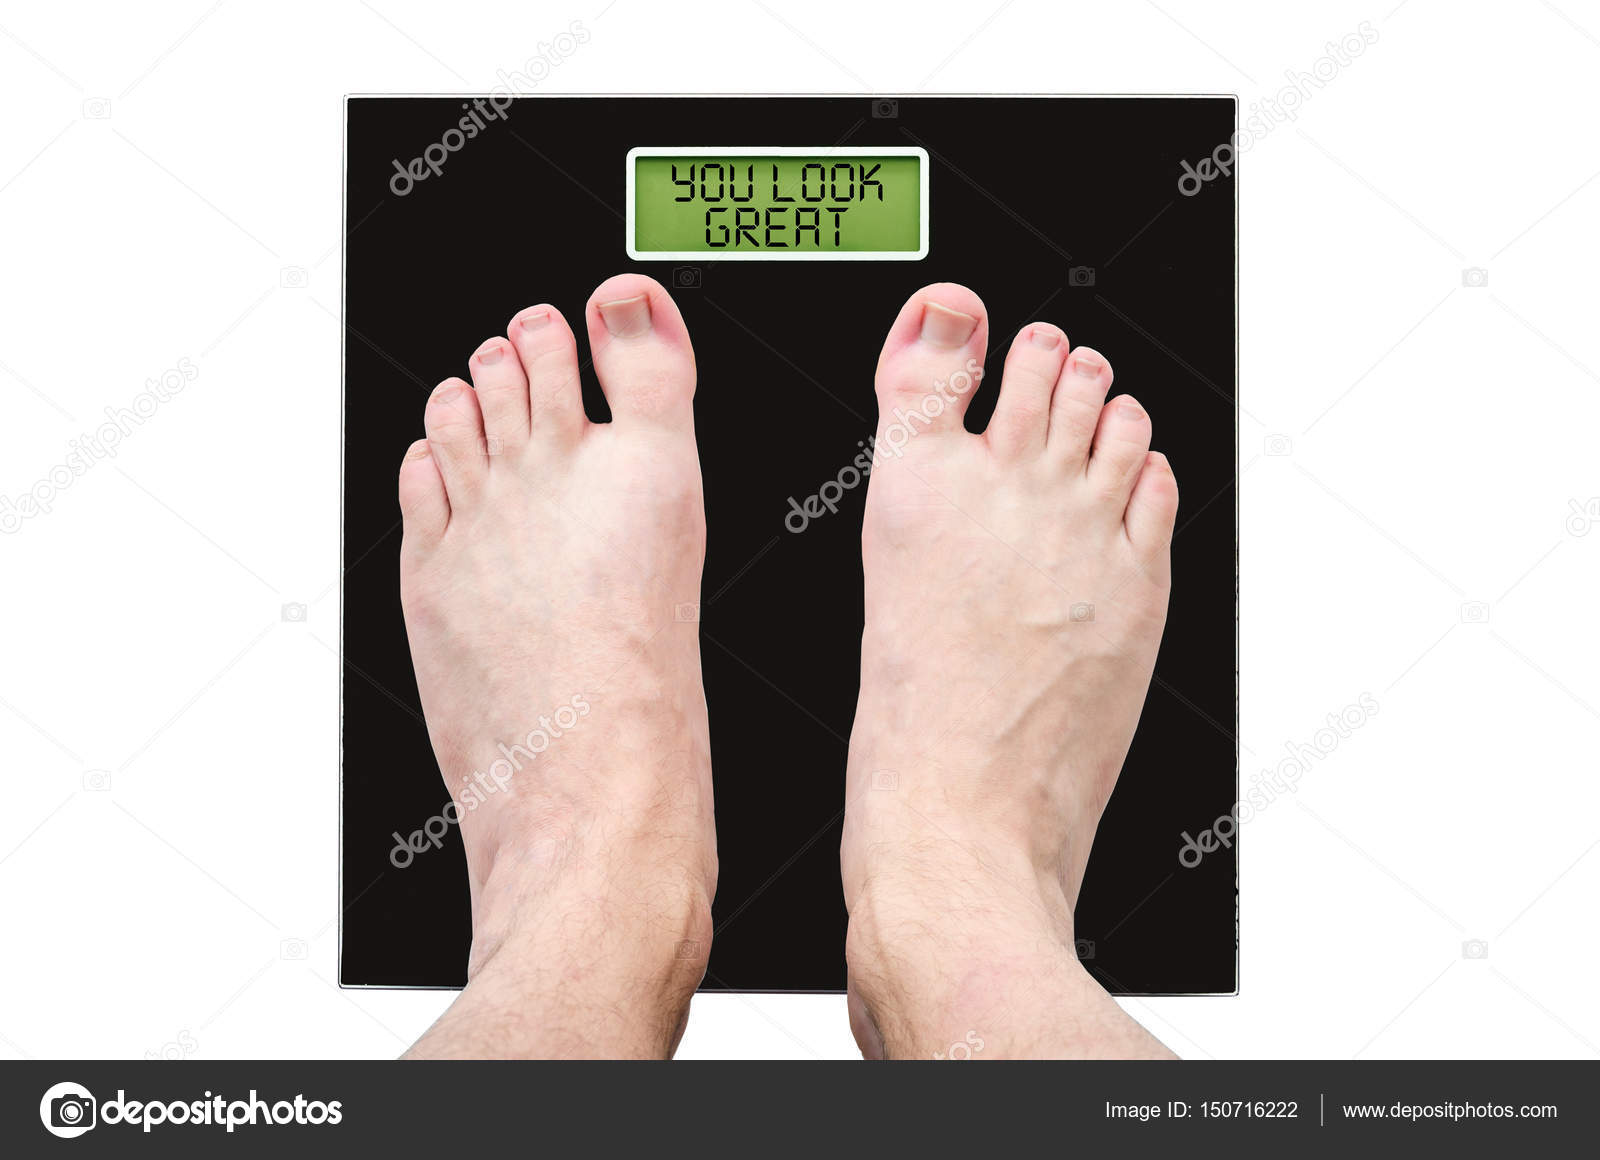 Man On Scales With Normal Weight And Good Health The Inscription You Look Great